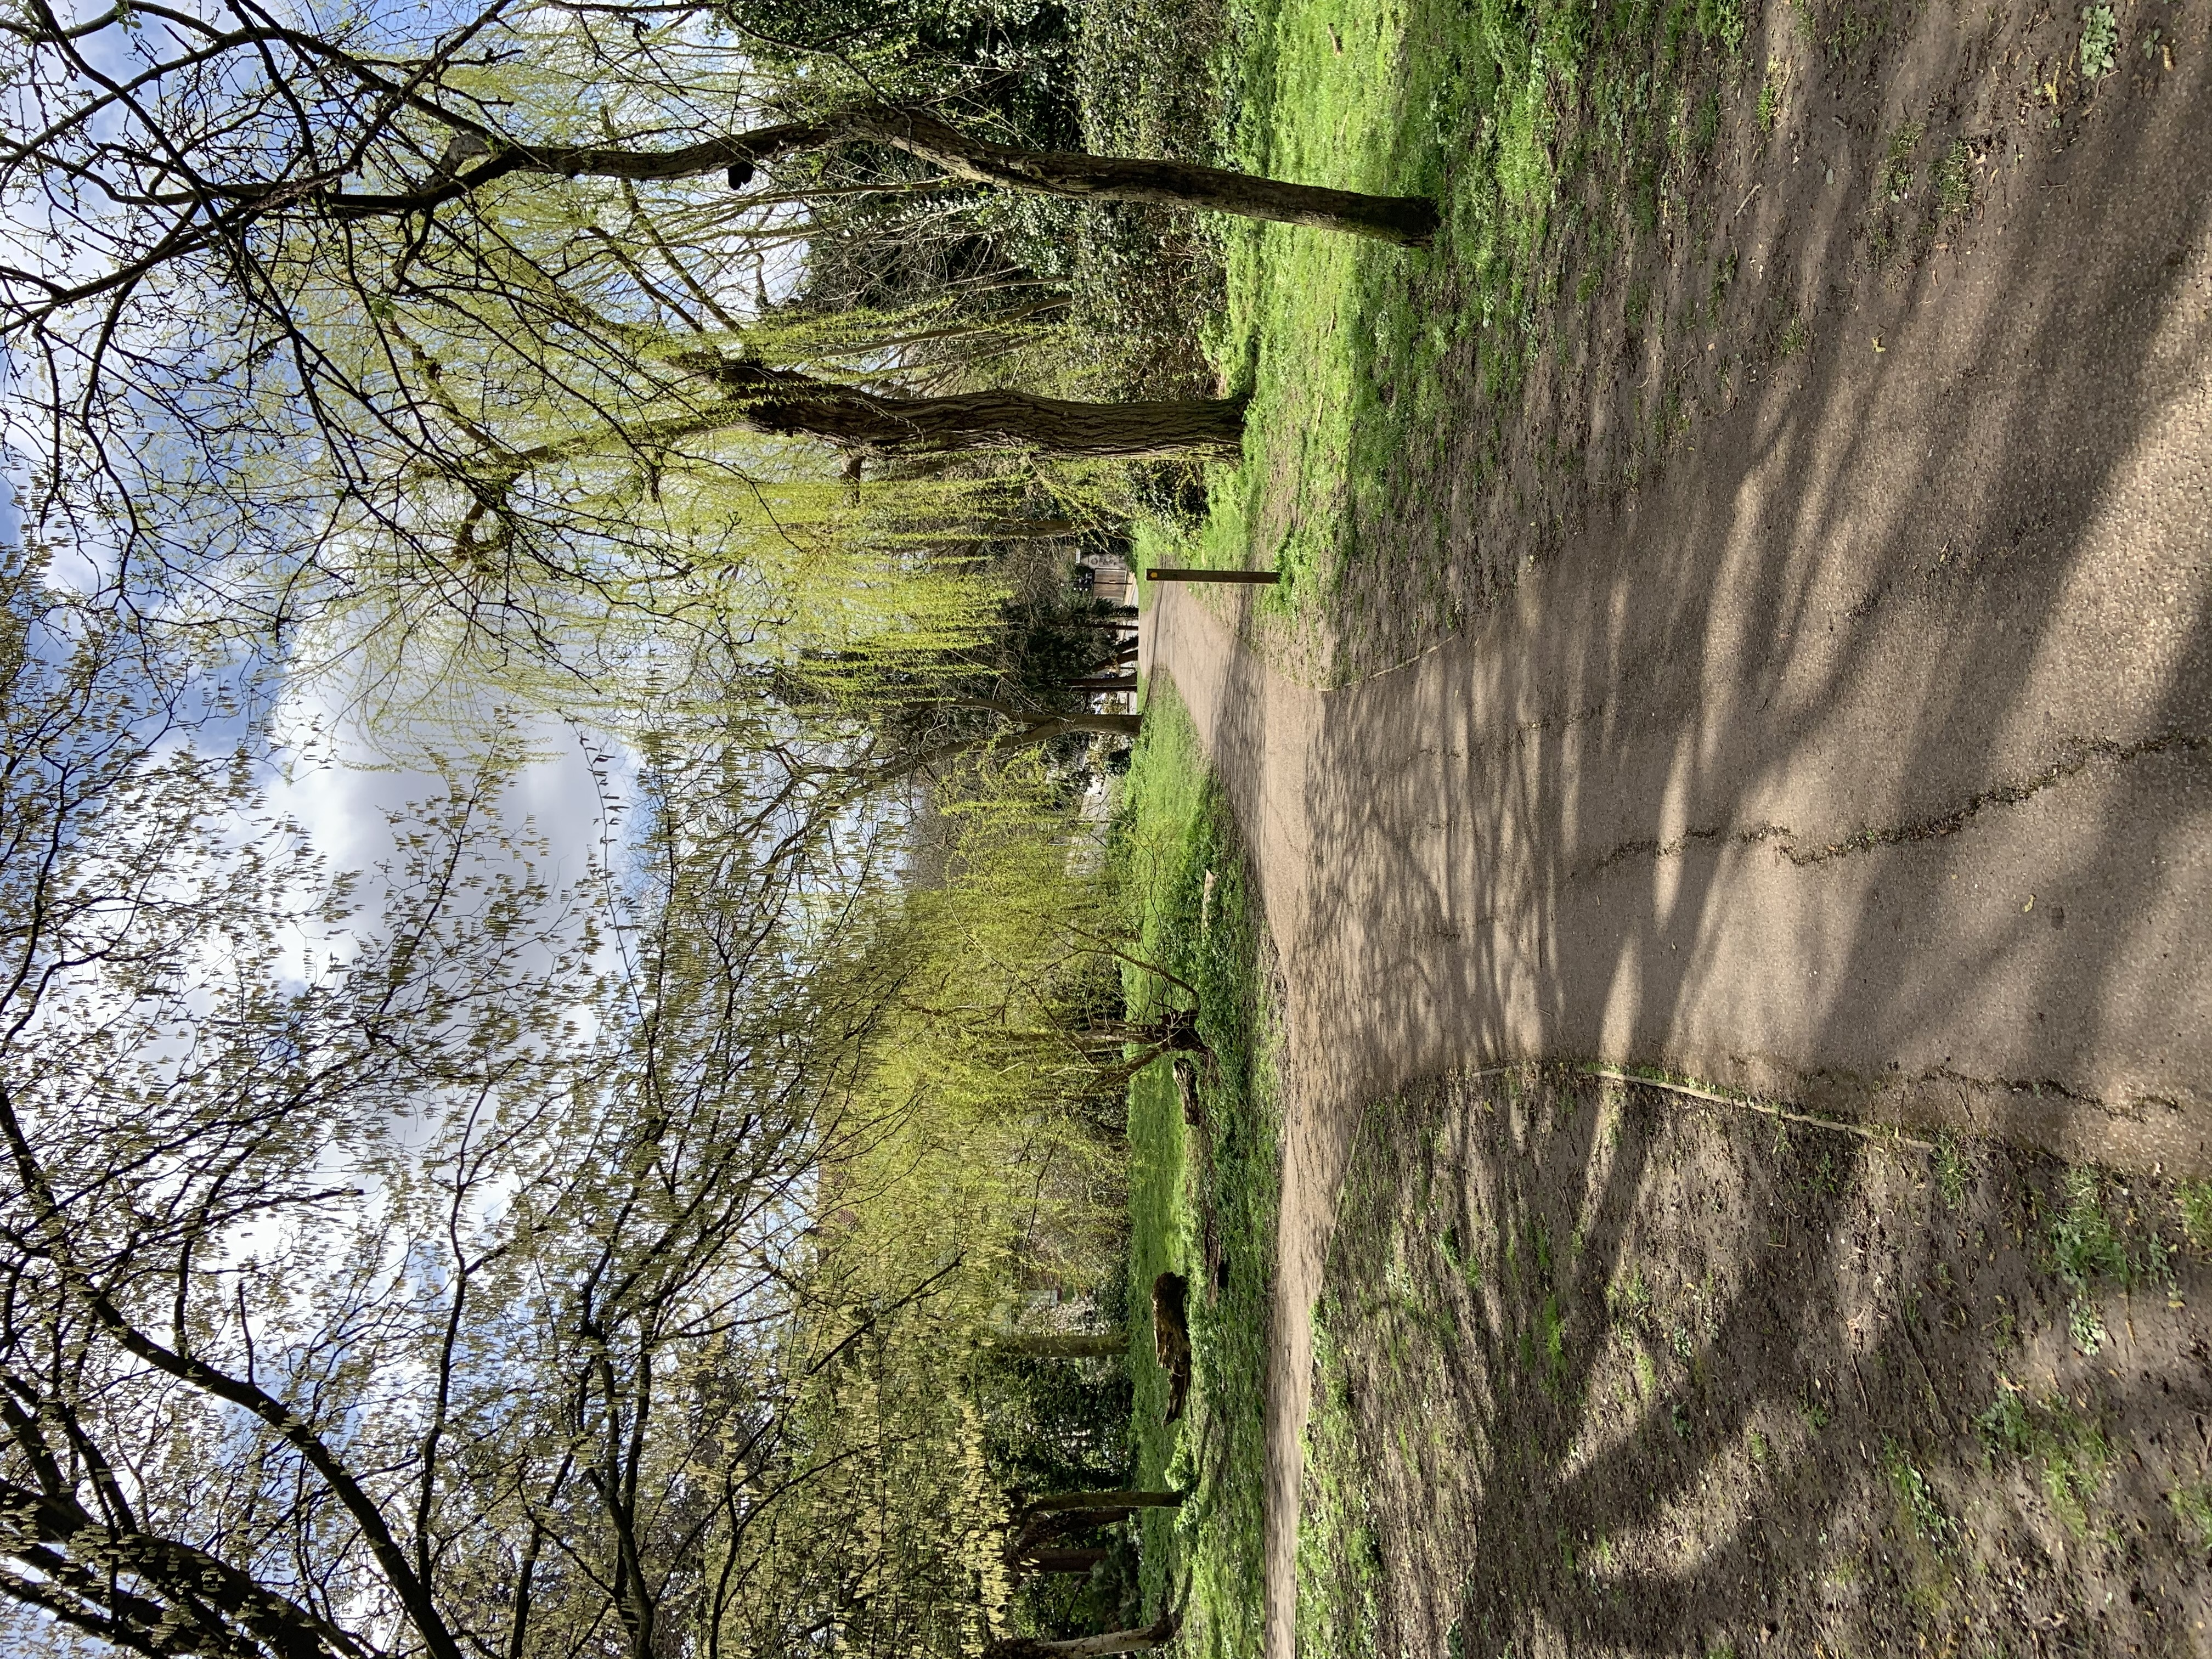 Path through Brenchley Gardens with willows turning green ahead.